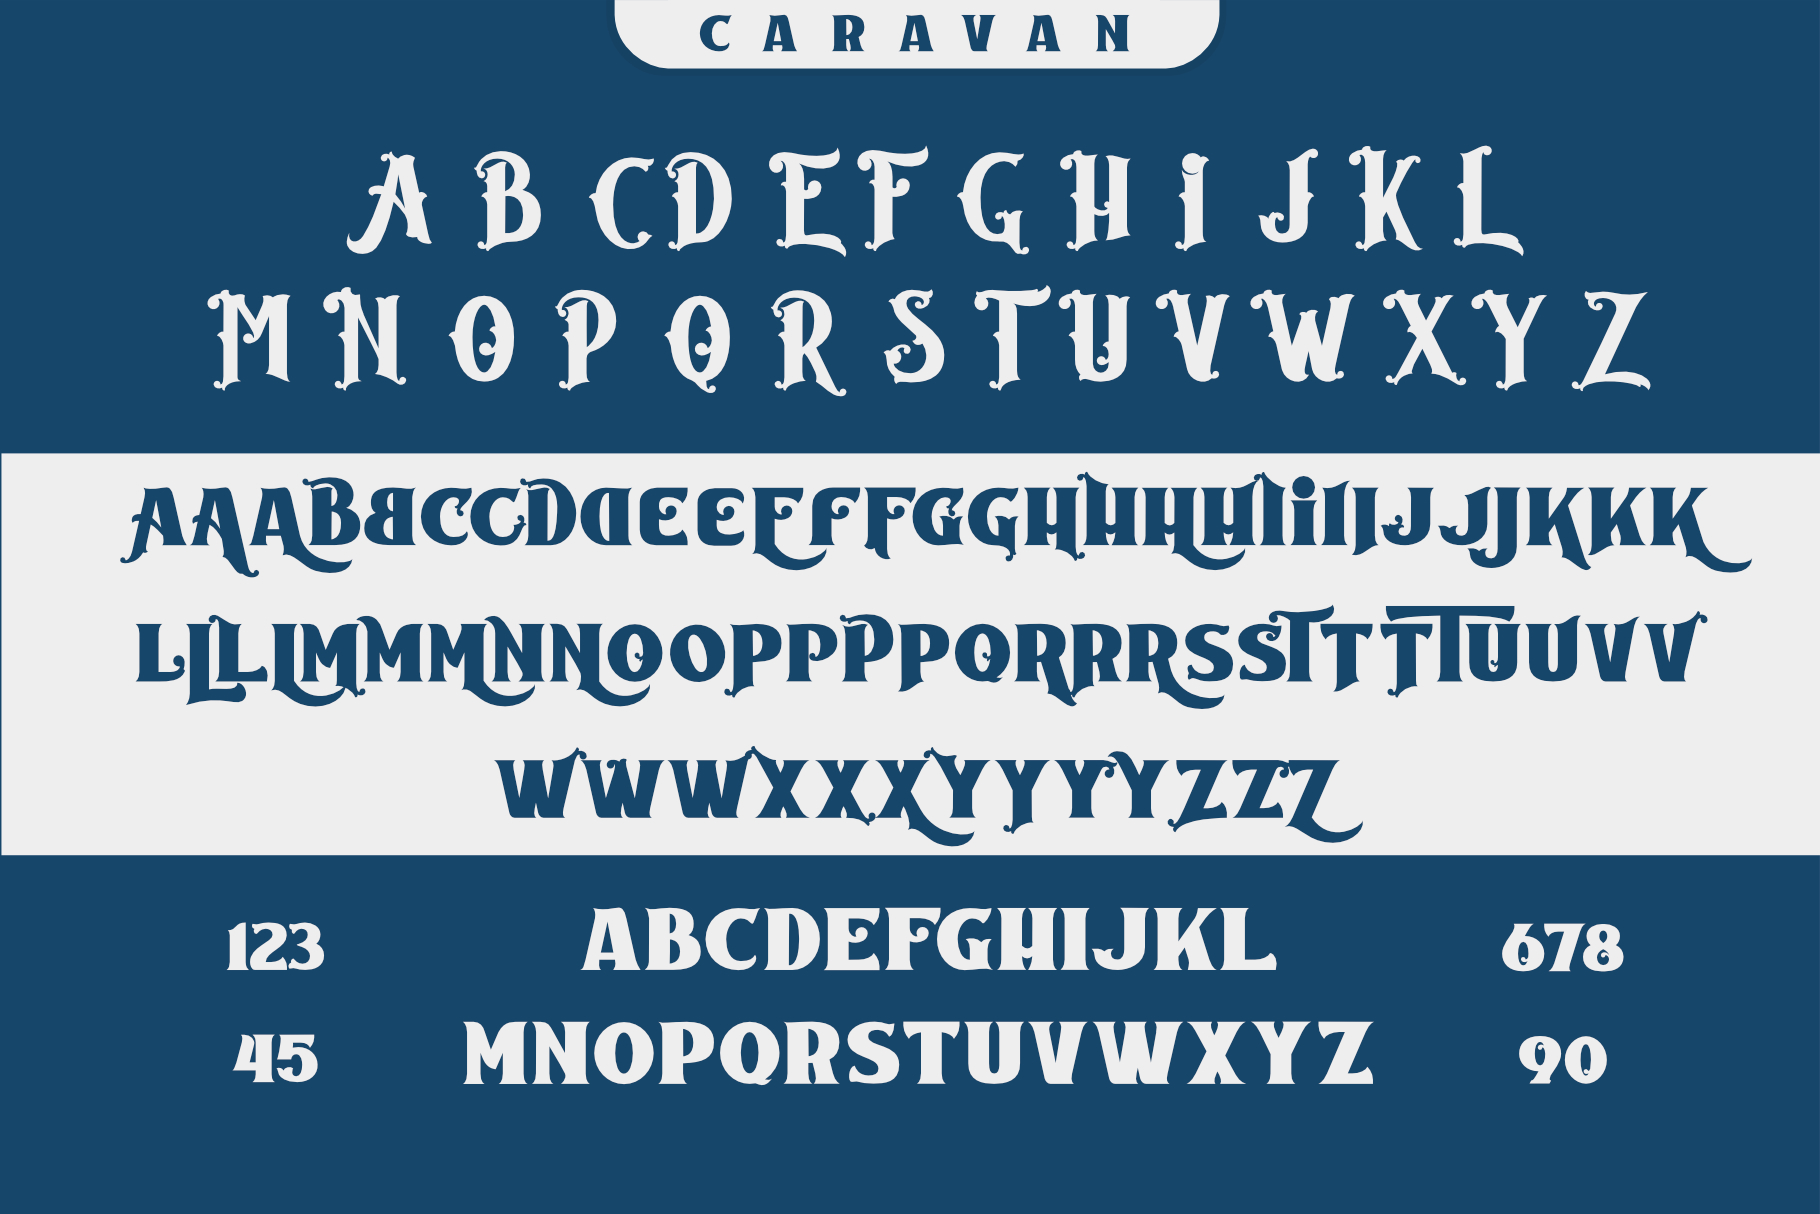 Caravan - Display Font example image 4